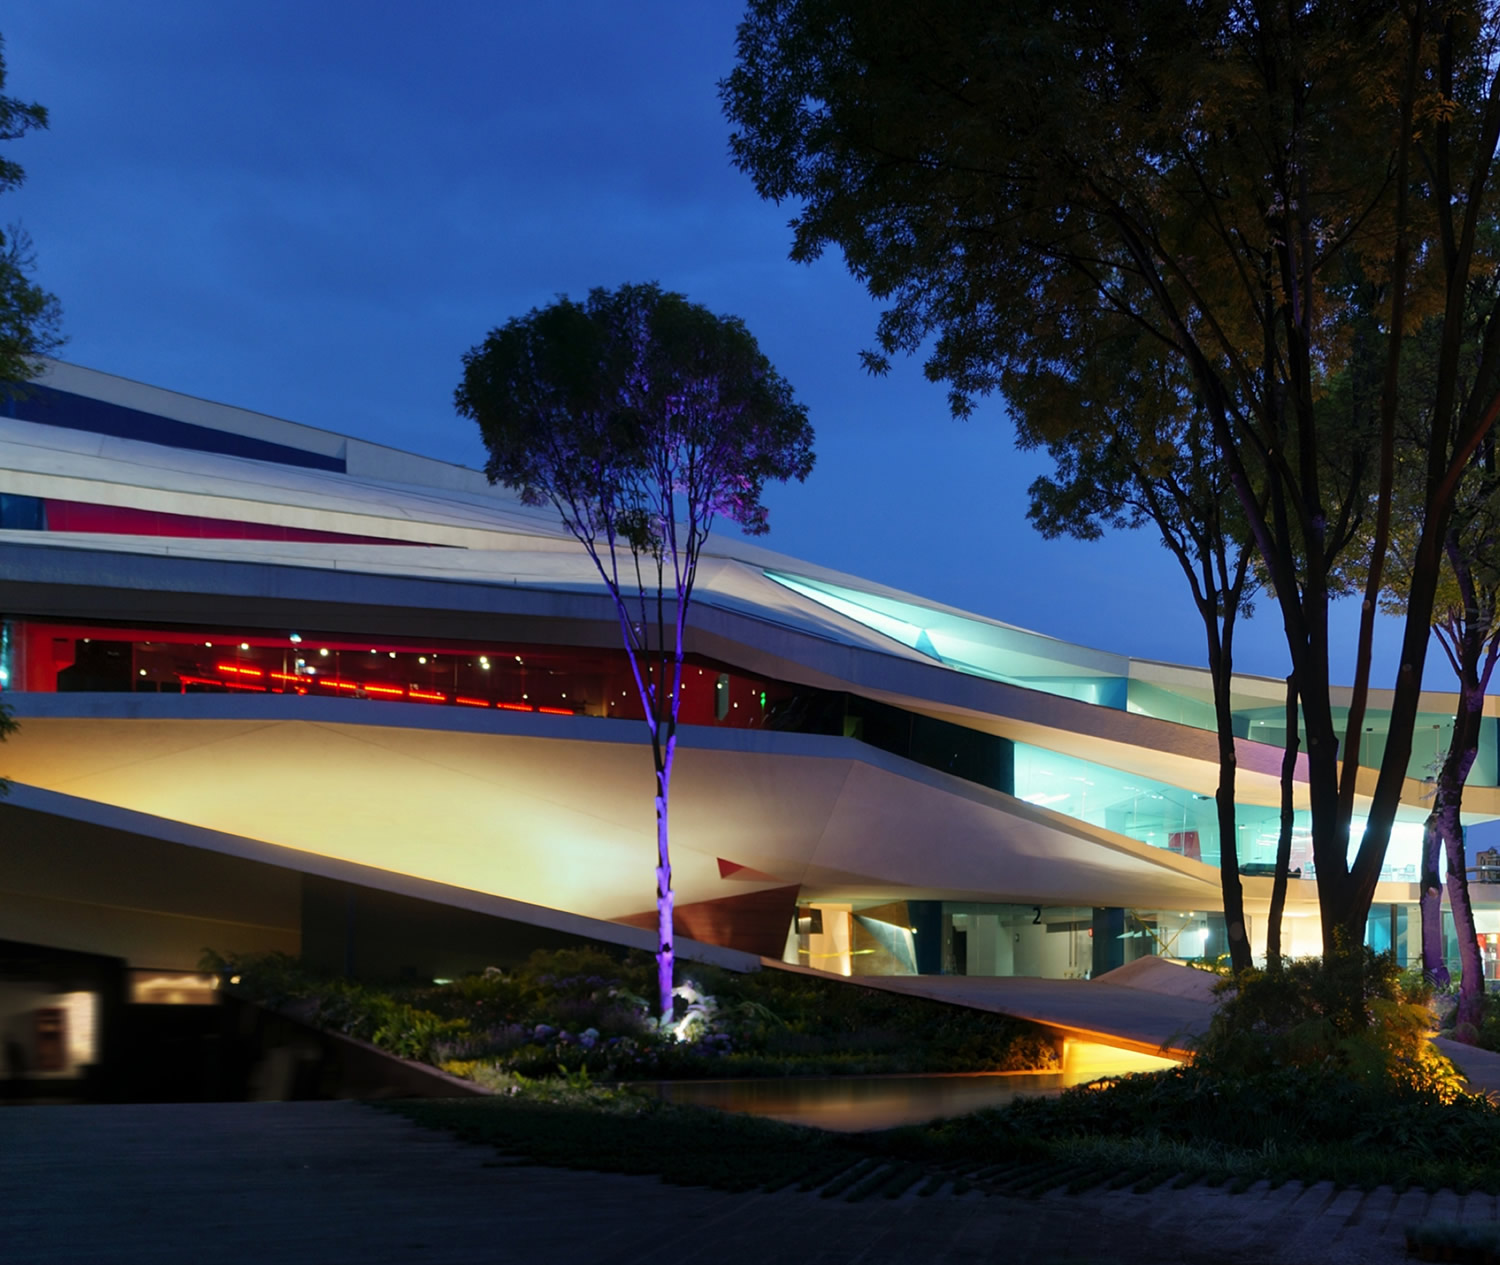 """Centro Cultural Roberto Cantoral"" by Gerardo Broissin, architectural lighting at night"